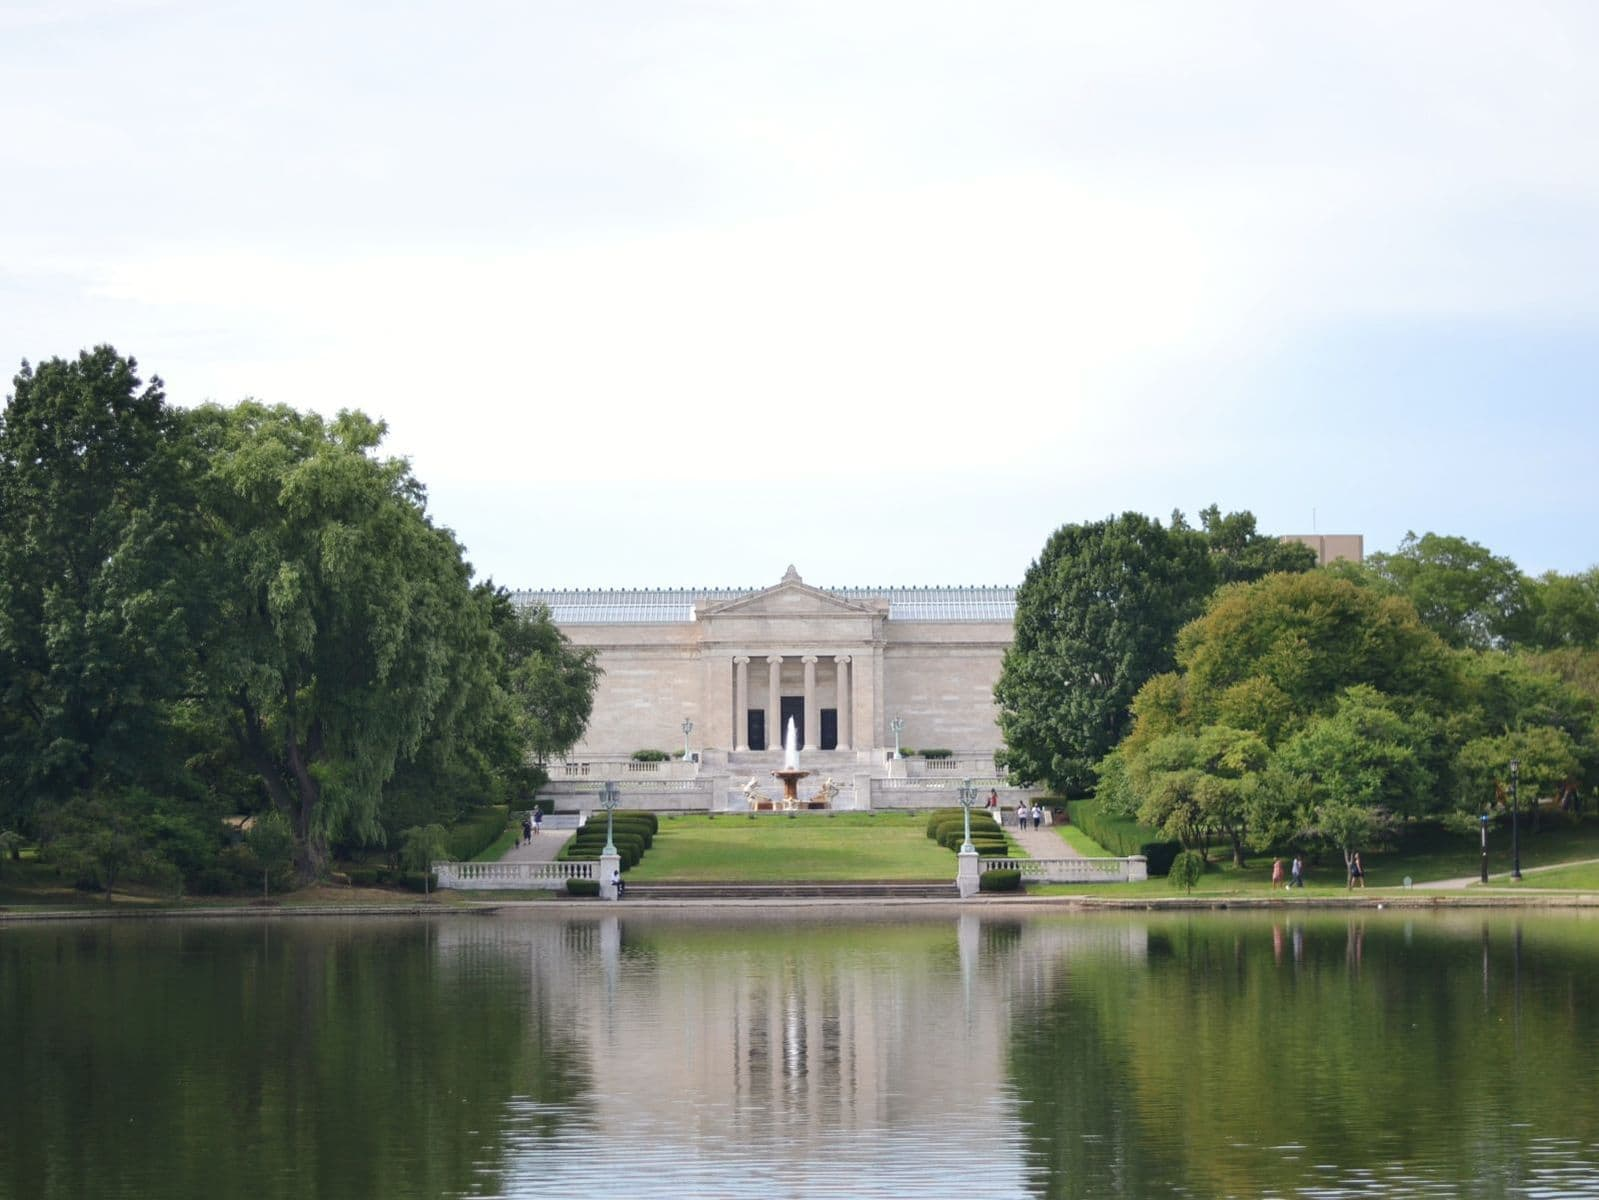 Cleveland Museum of Art building across a small pond